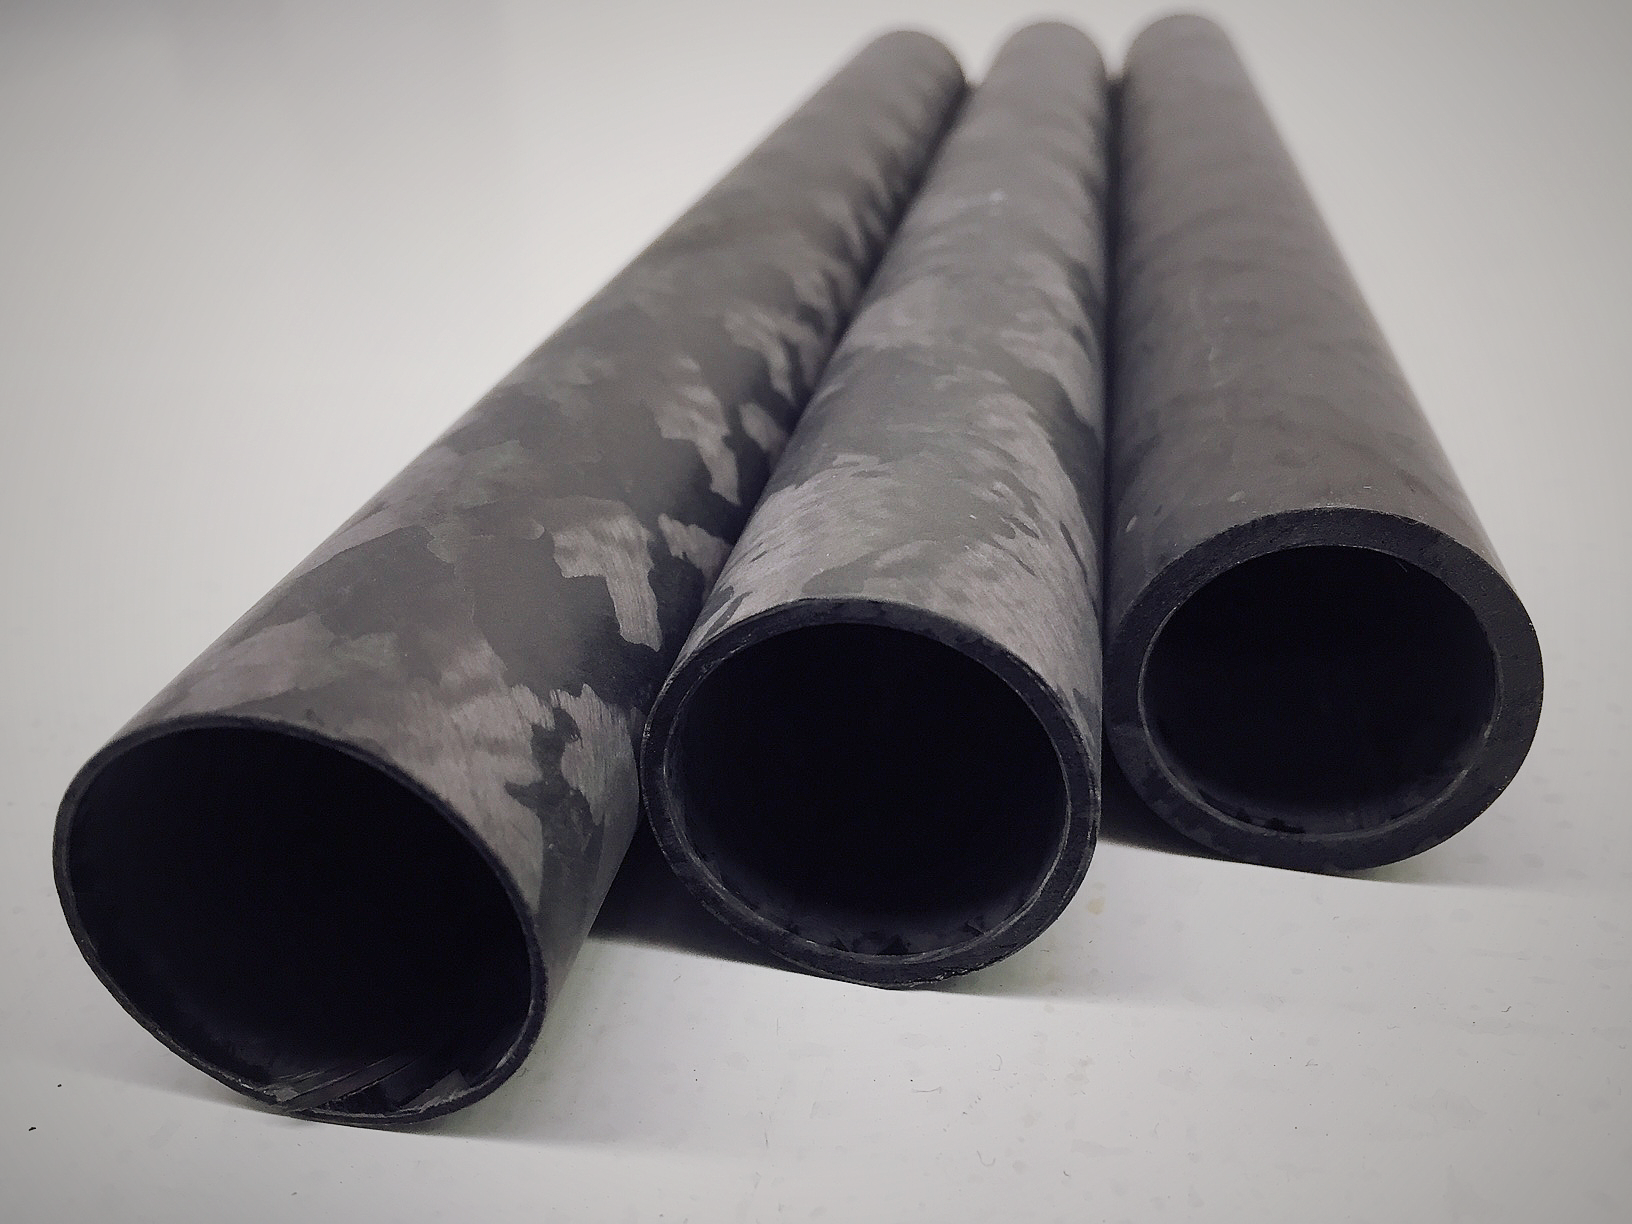 Close Up of three Carbon Fibre Tubes in a Row